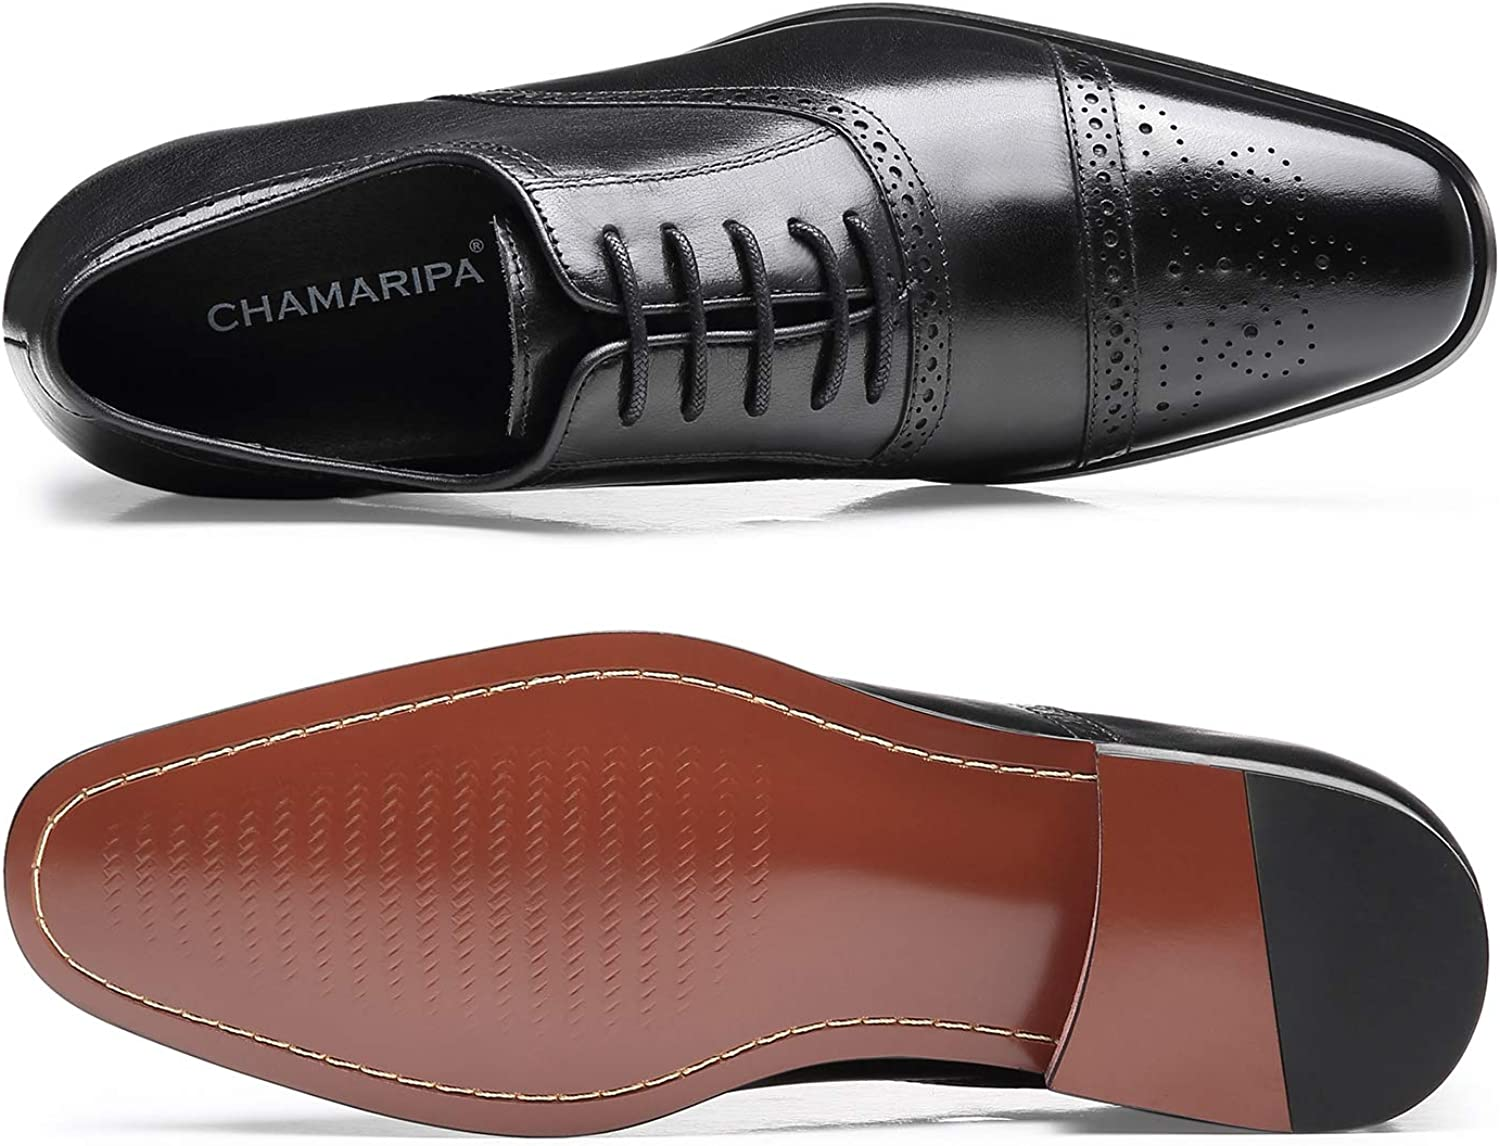 CHAMARIPA Mens Invisible Height Increasing Elevator Shoes-Black Oxford Dress Shoes Calfskin Leather-2.76 Inches Taller K6531-1